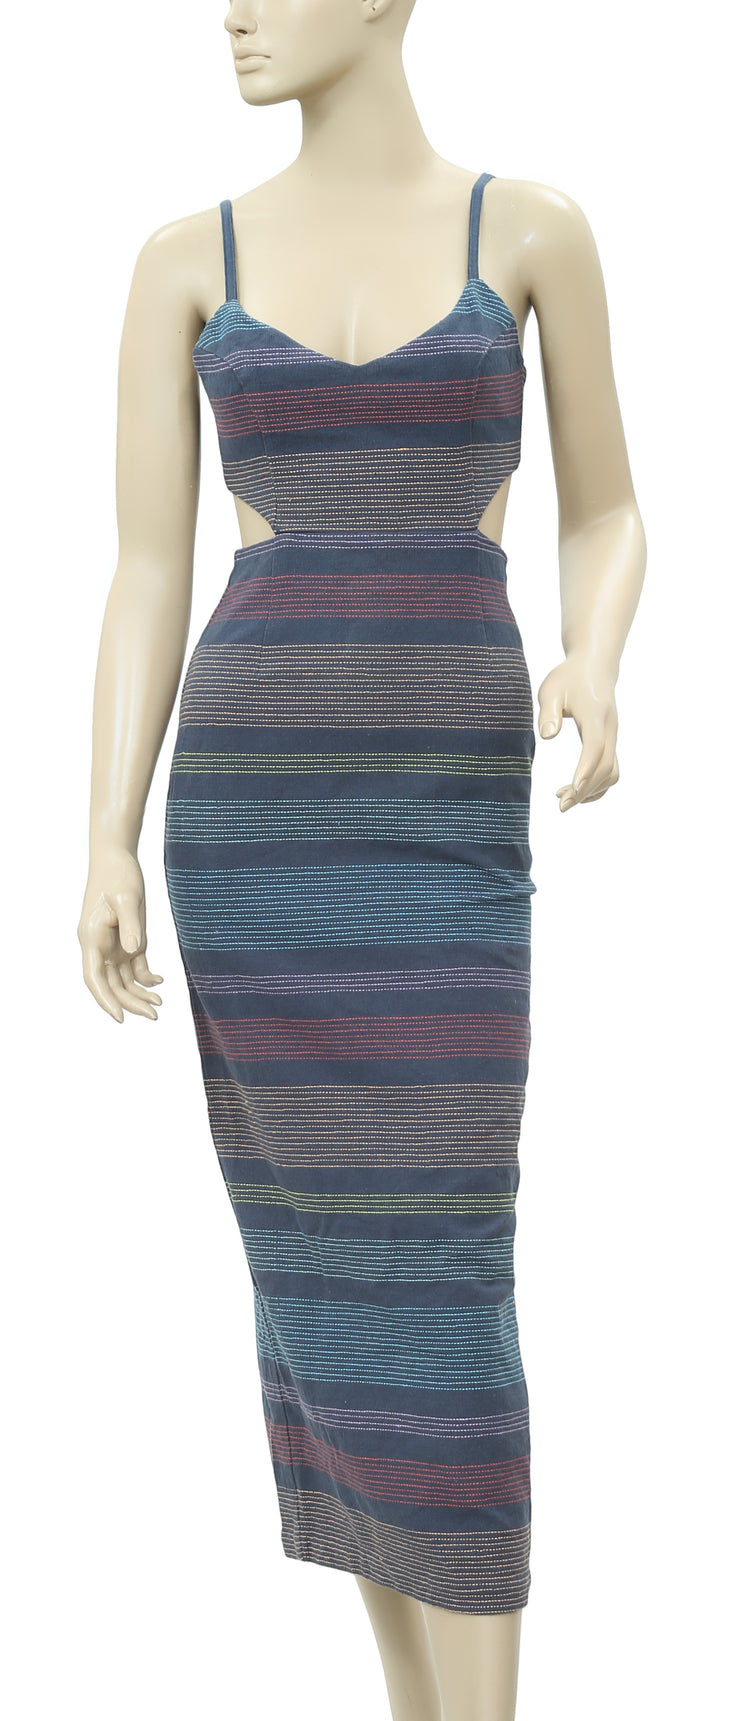 Mara Hoffman Striped Embroidered Dress XS 0